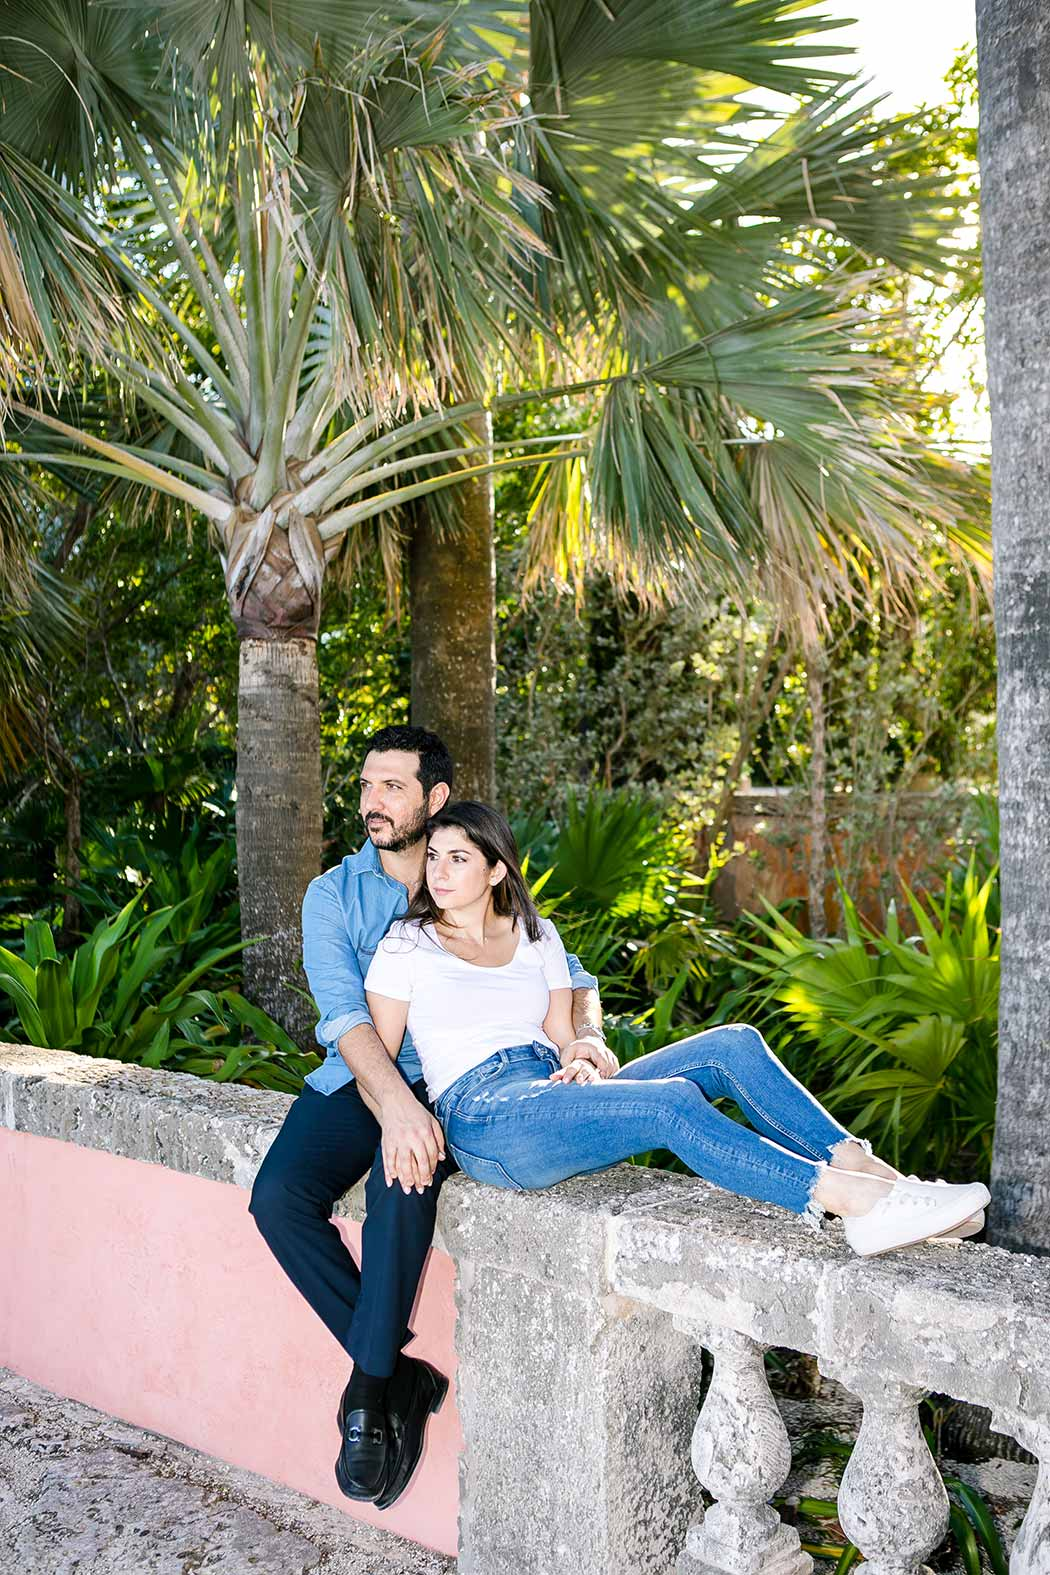 casual photoshoot at vizcaya museum miami | engagement photoshoot in jeans and tee shirt